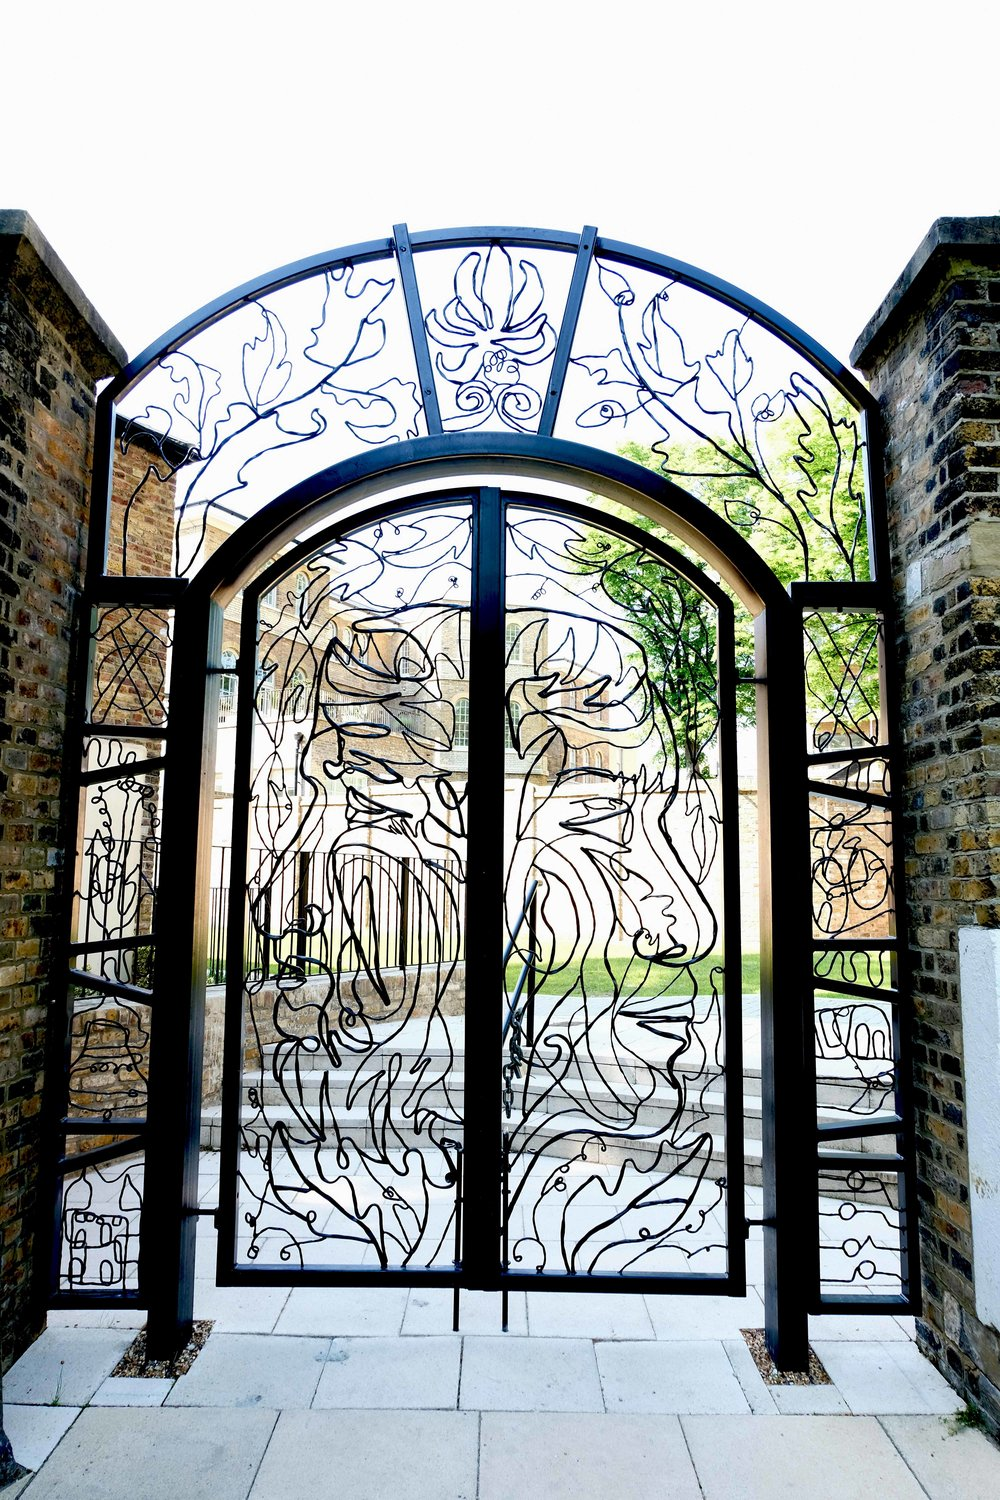 A photograph of an intricate iron gate made by Agnes Jones